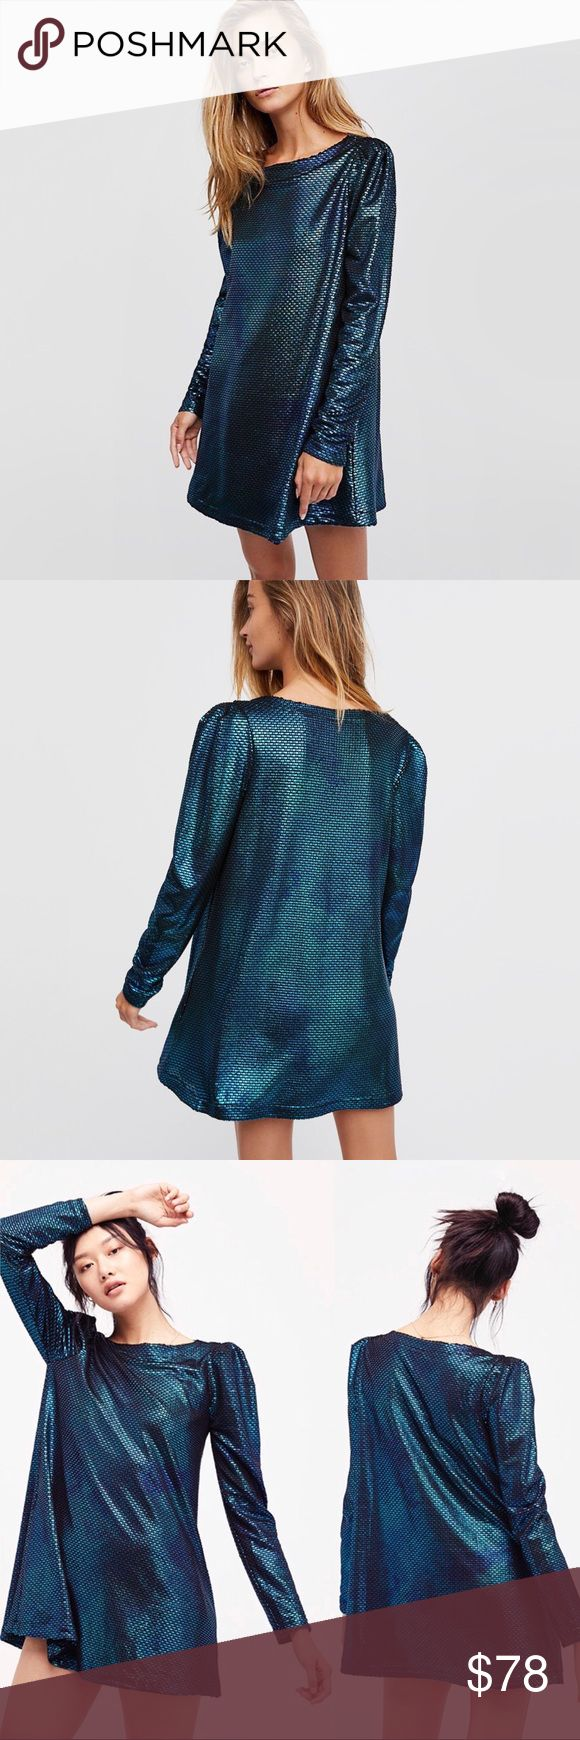 Free People Diamonds Are Forever Dress Shine on in this long sleeve metallic mini dress featuring structured shoulders and a swingy silhouette. Mermaid color scheme. Side pockets!! Free People Dresses